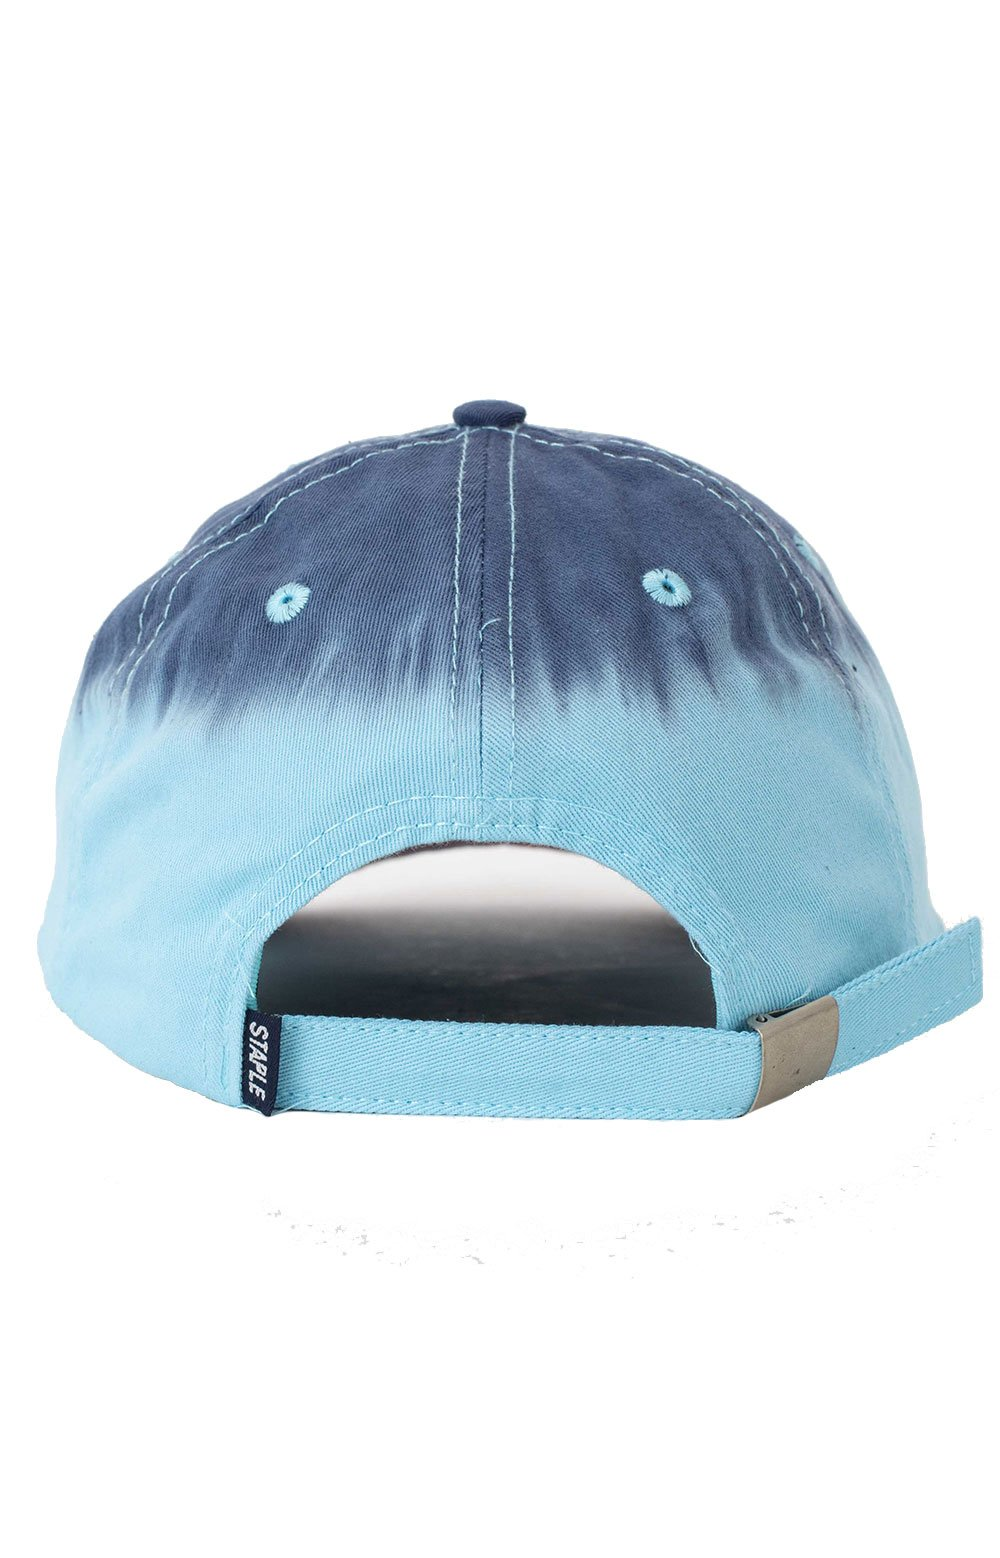 Dyed Panel Dad Hat - Teal  3